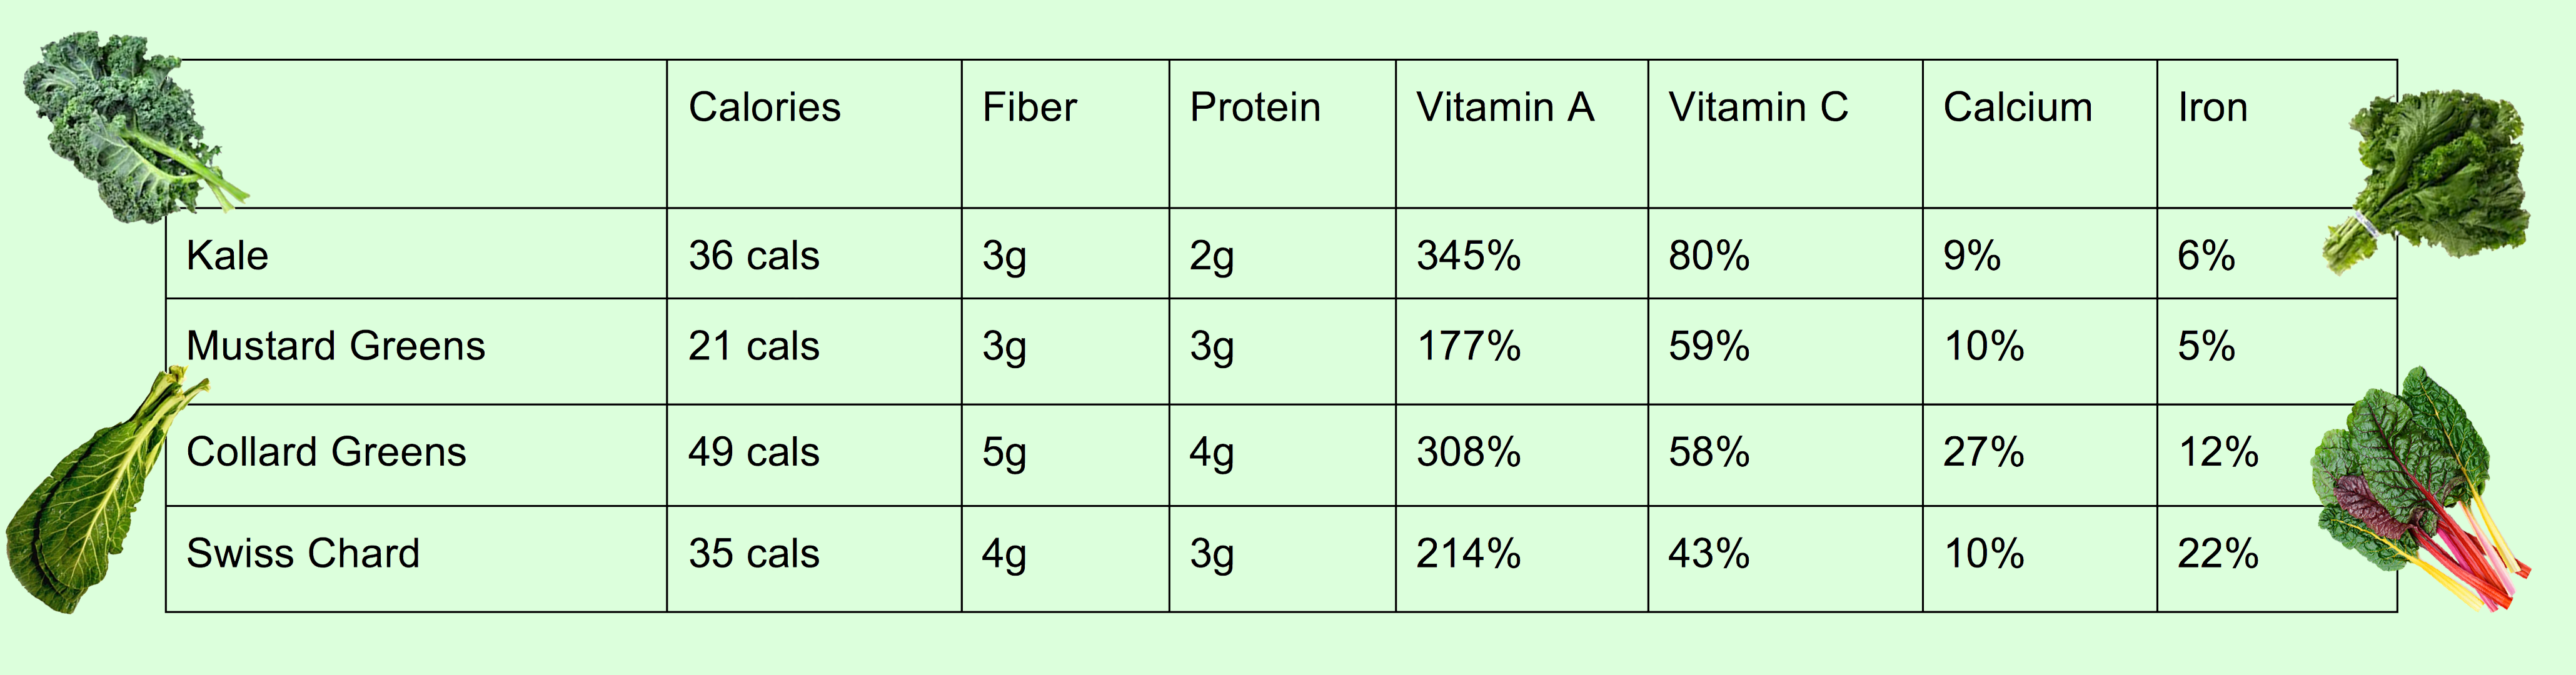 Data Source: SELF Nutrition Data